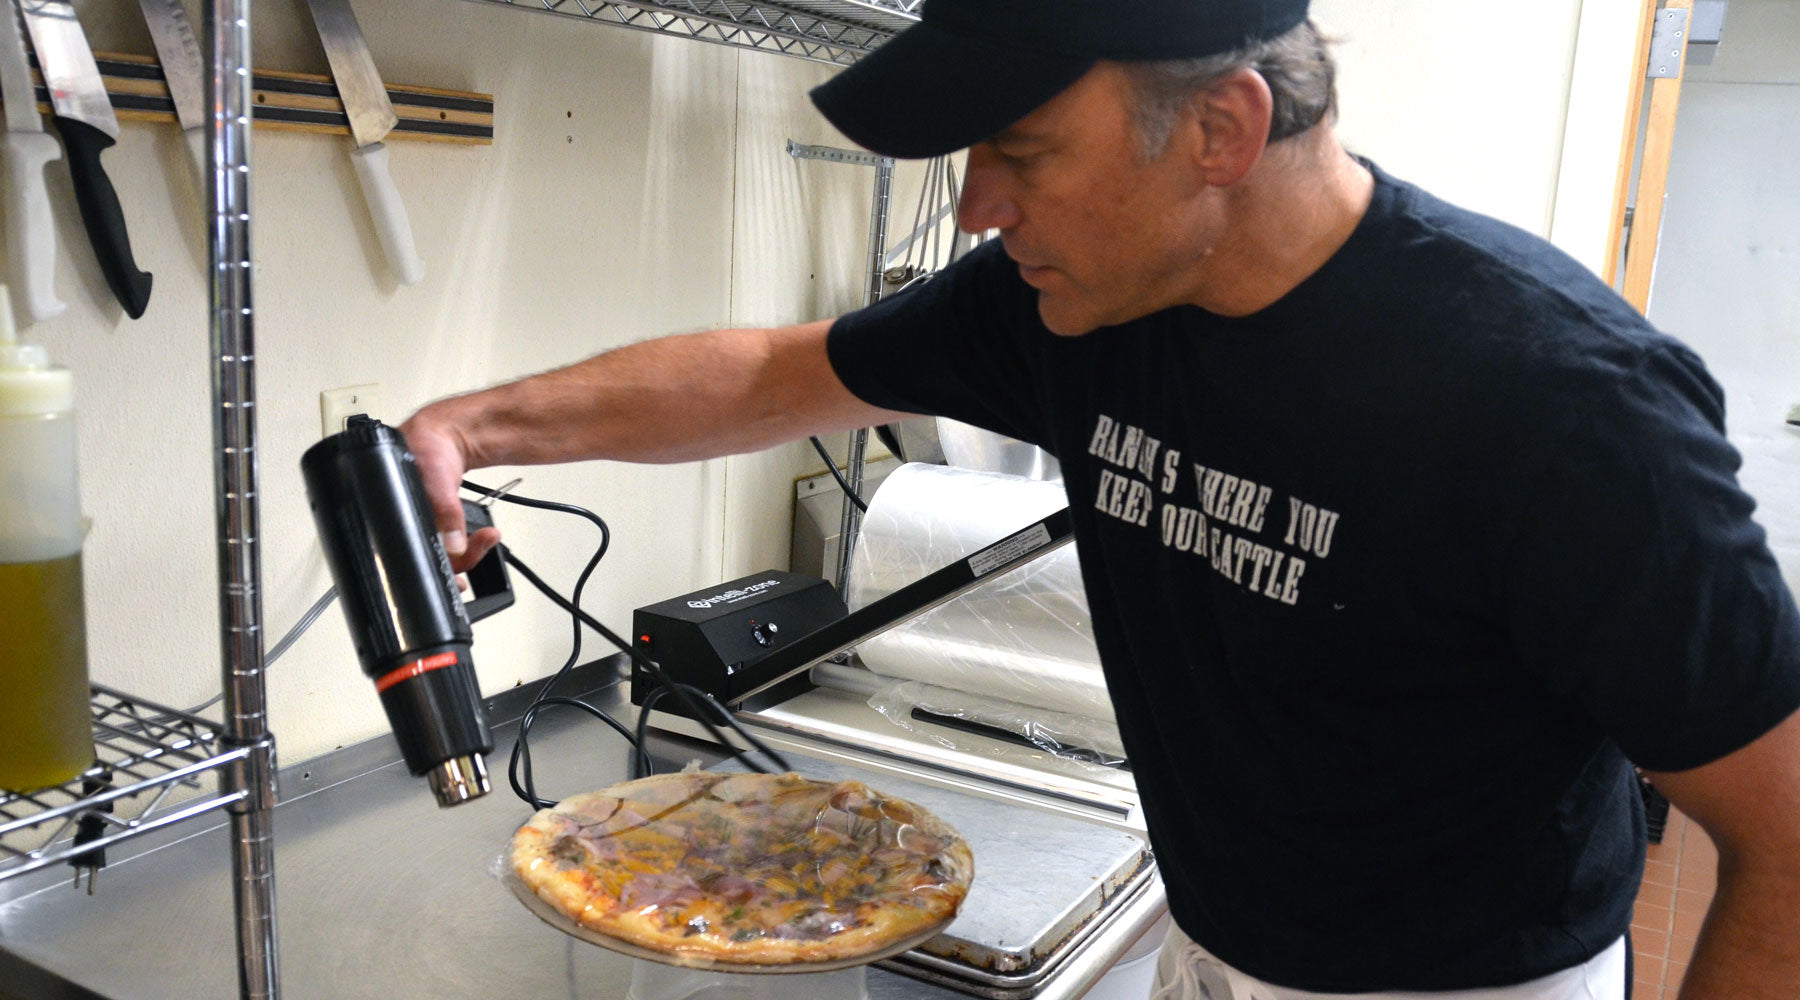 Fire Up Your Oven: Pizzeria Caldera Launches Frozen Pizza Line